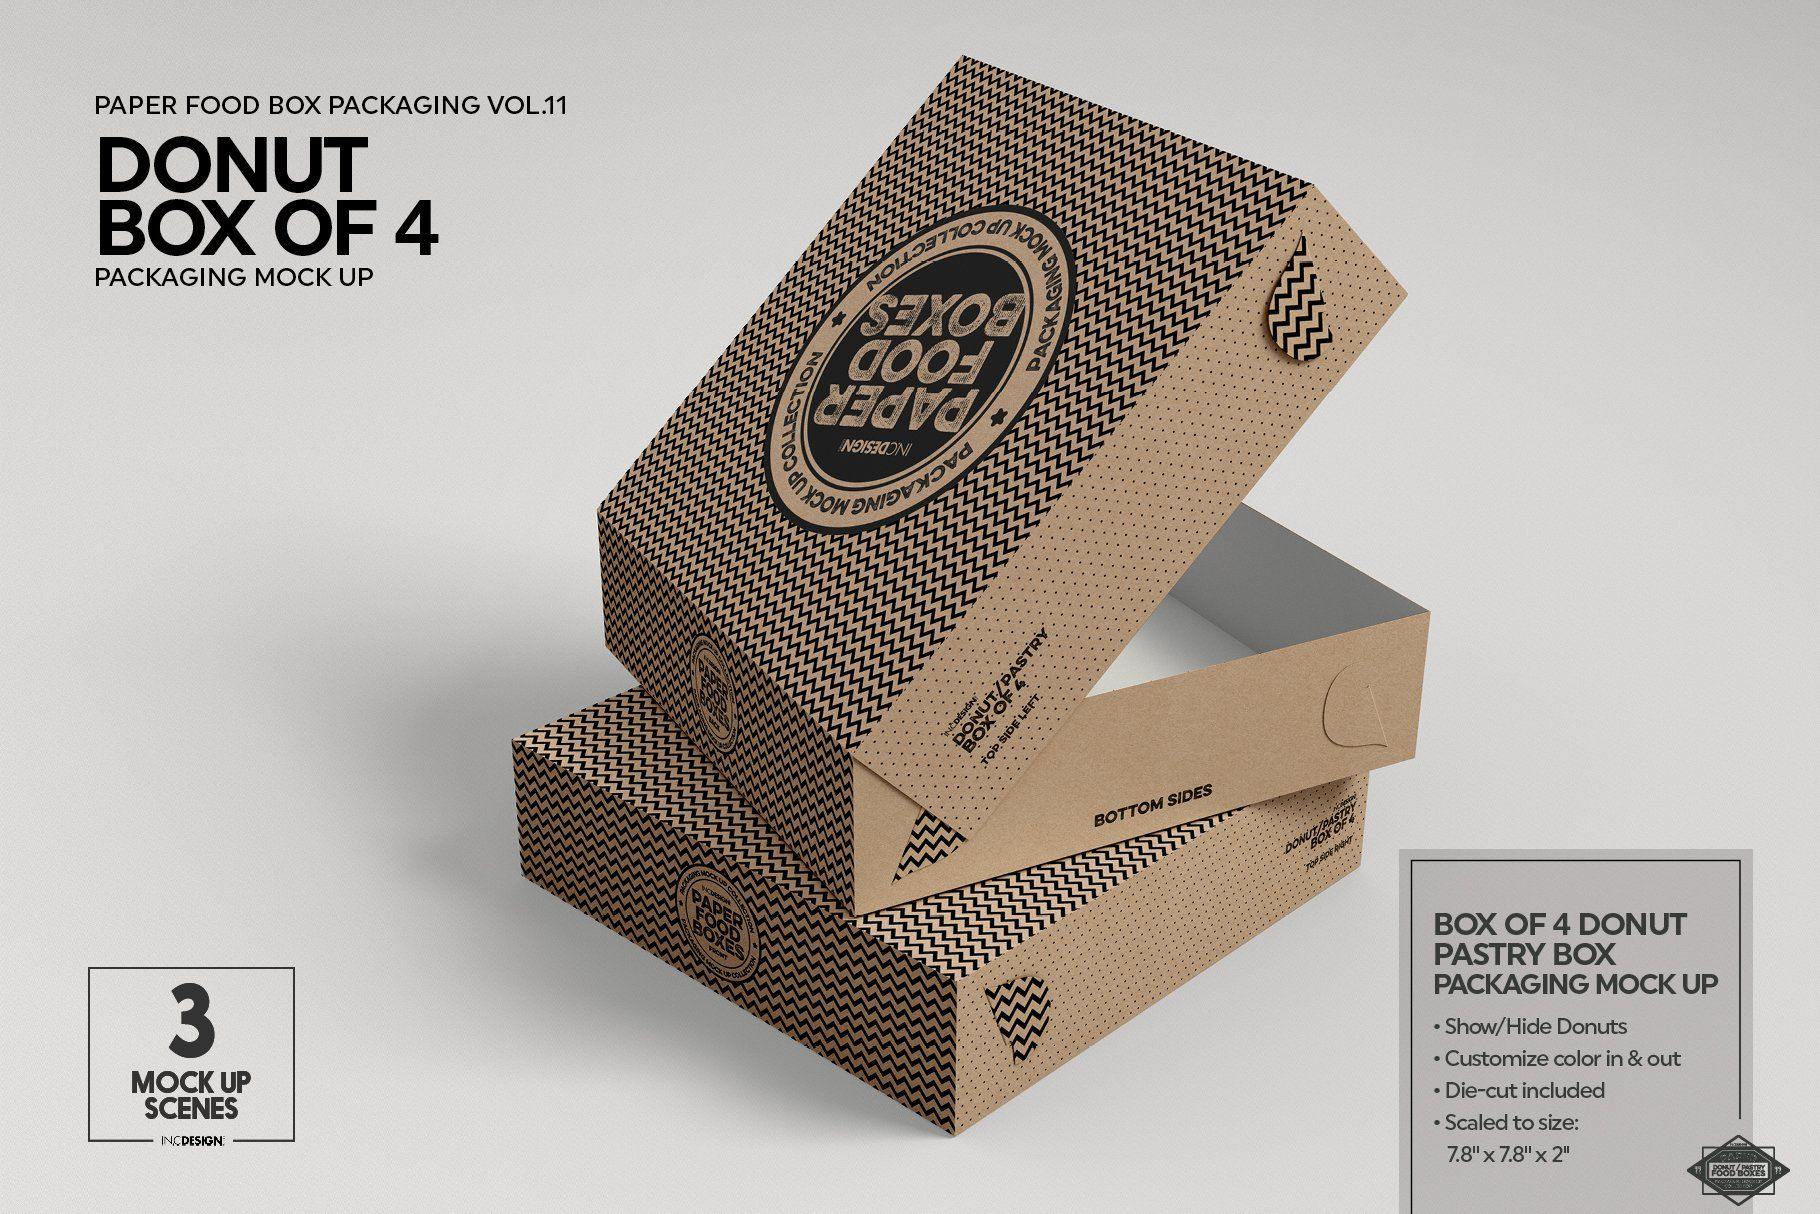 Download Box Of Four Donut Pastry Box Mockup Food Box Packaging Packaging Mockup Box Mockup